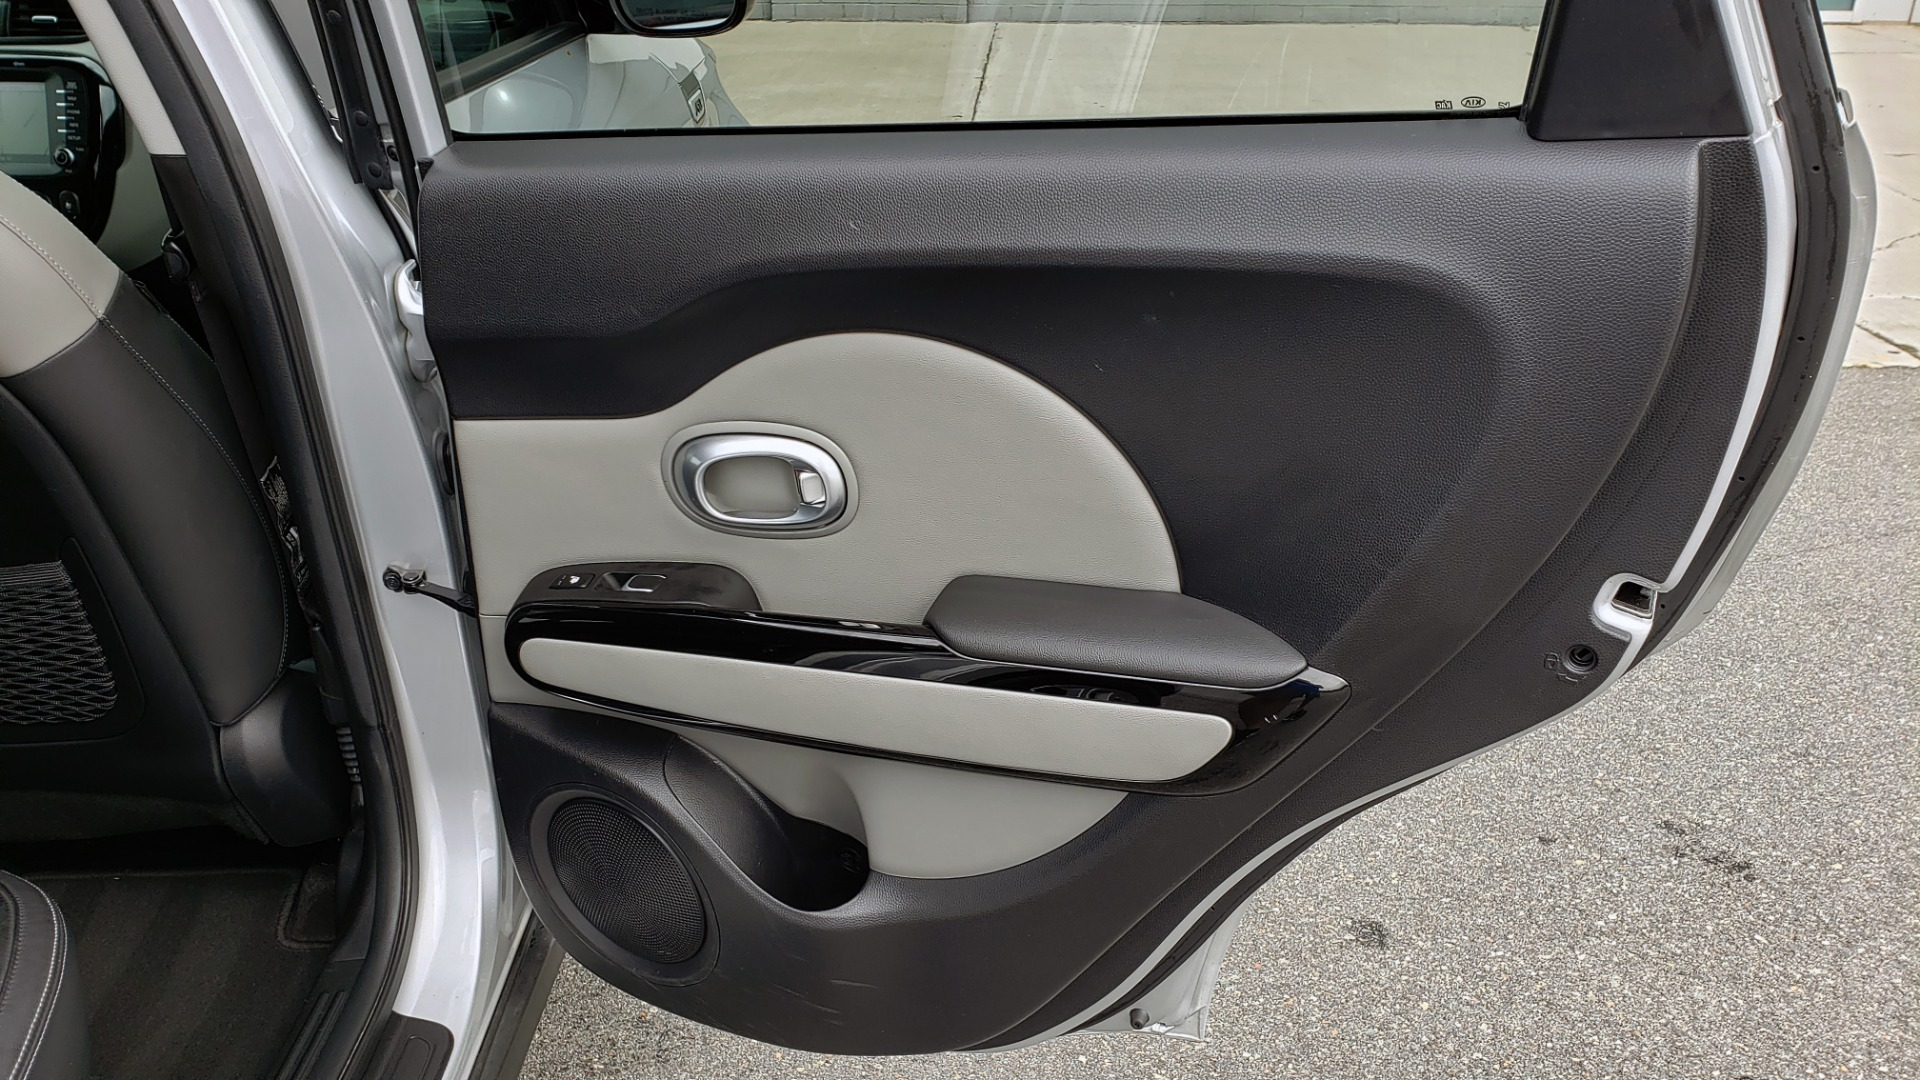 Used 2017 Kia SOUL PLUS / NAV / SUNROOF / LEATHER / HTD STS / REARVIEW for sale $16,995 at Formula Imports in Charlotte NC 28227 63